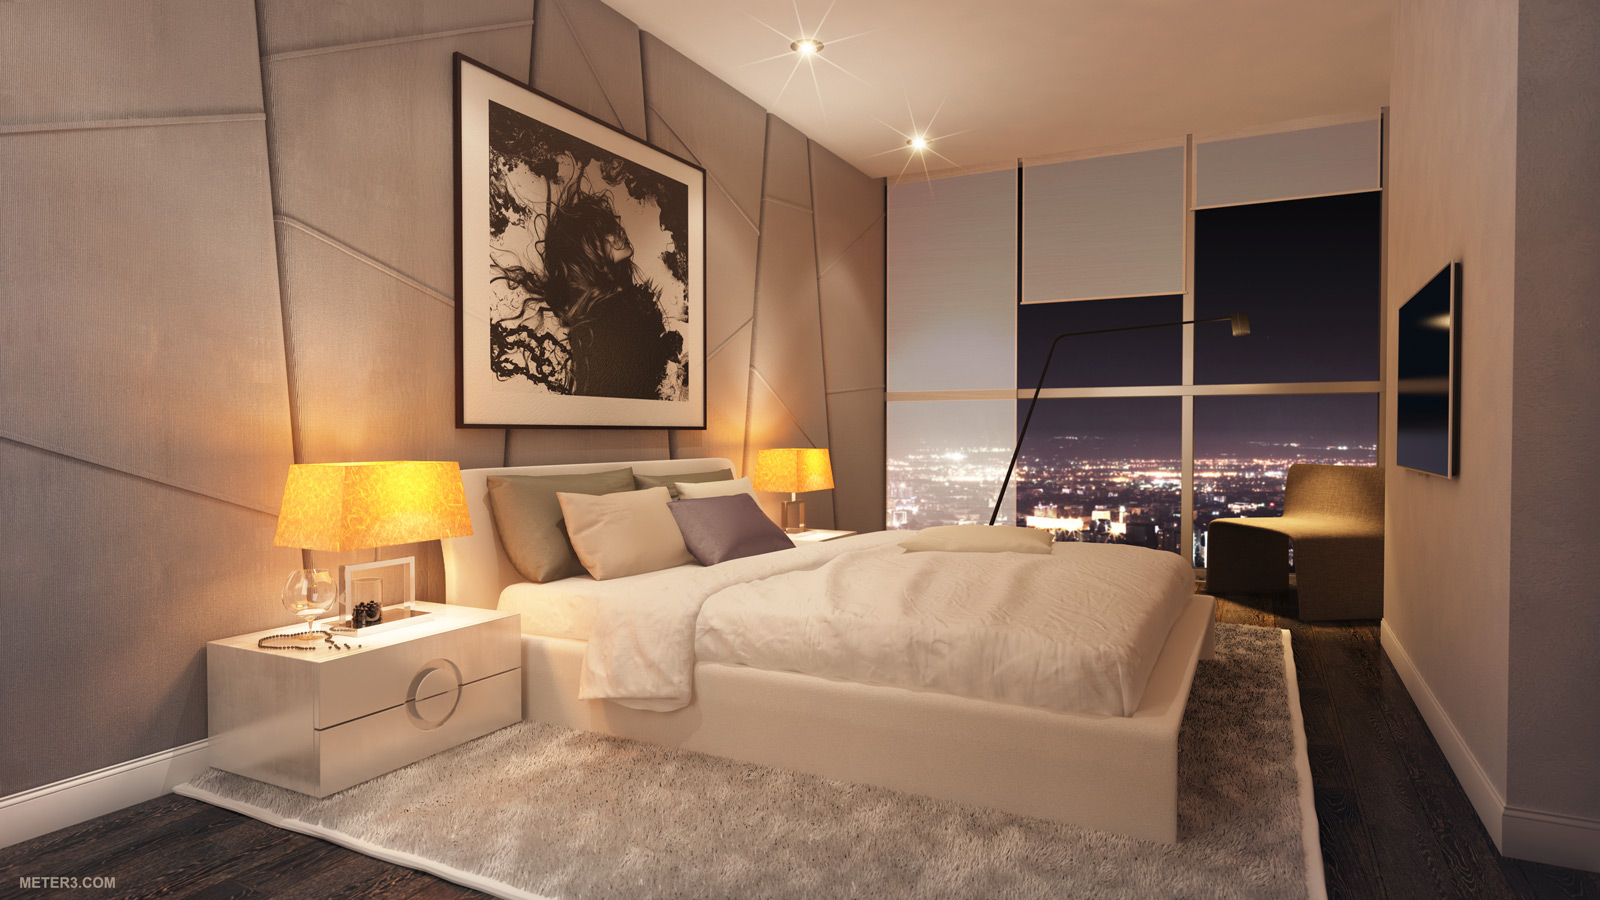 Smoking hot penthouse interior designs visualized - Interior bedroom design ...